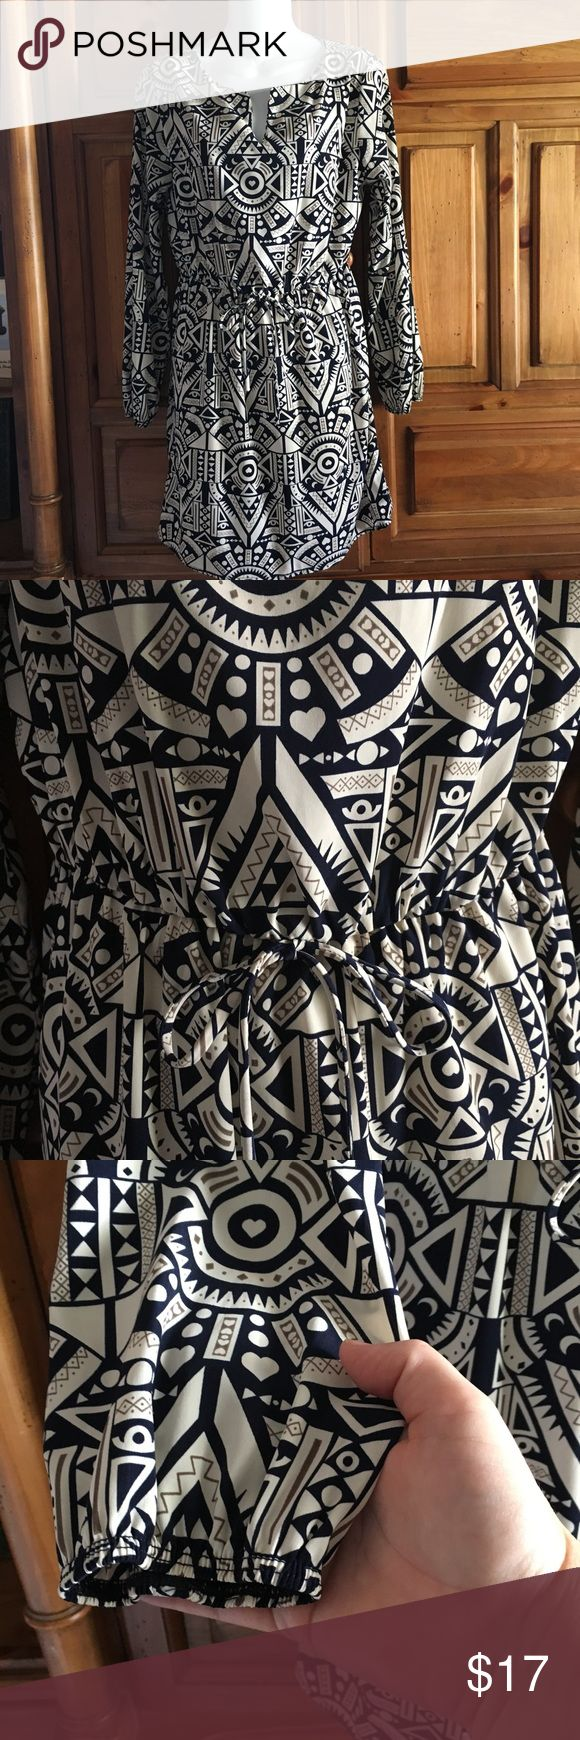 "Peppermint Boutique Brand Aztec Dress Large L This is a long sleeve dress from the brand Peppermint which is a boutique brand. It is a size Large with an  Aztec Print.  It has a drawstring waist. Great for the upcoming fall.   Pit to Pit: 20"" Length: 33"" Peppermint Dresses Midi"